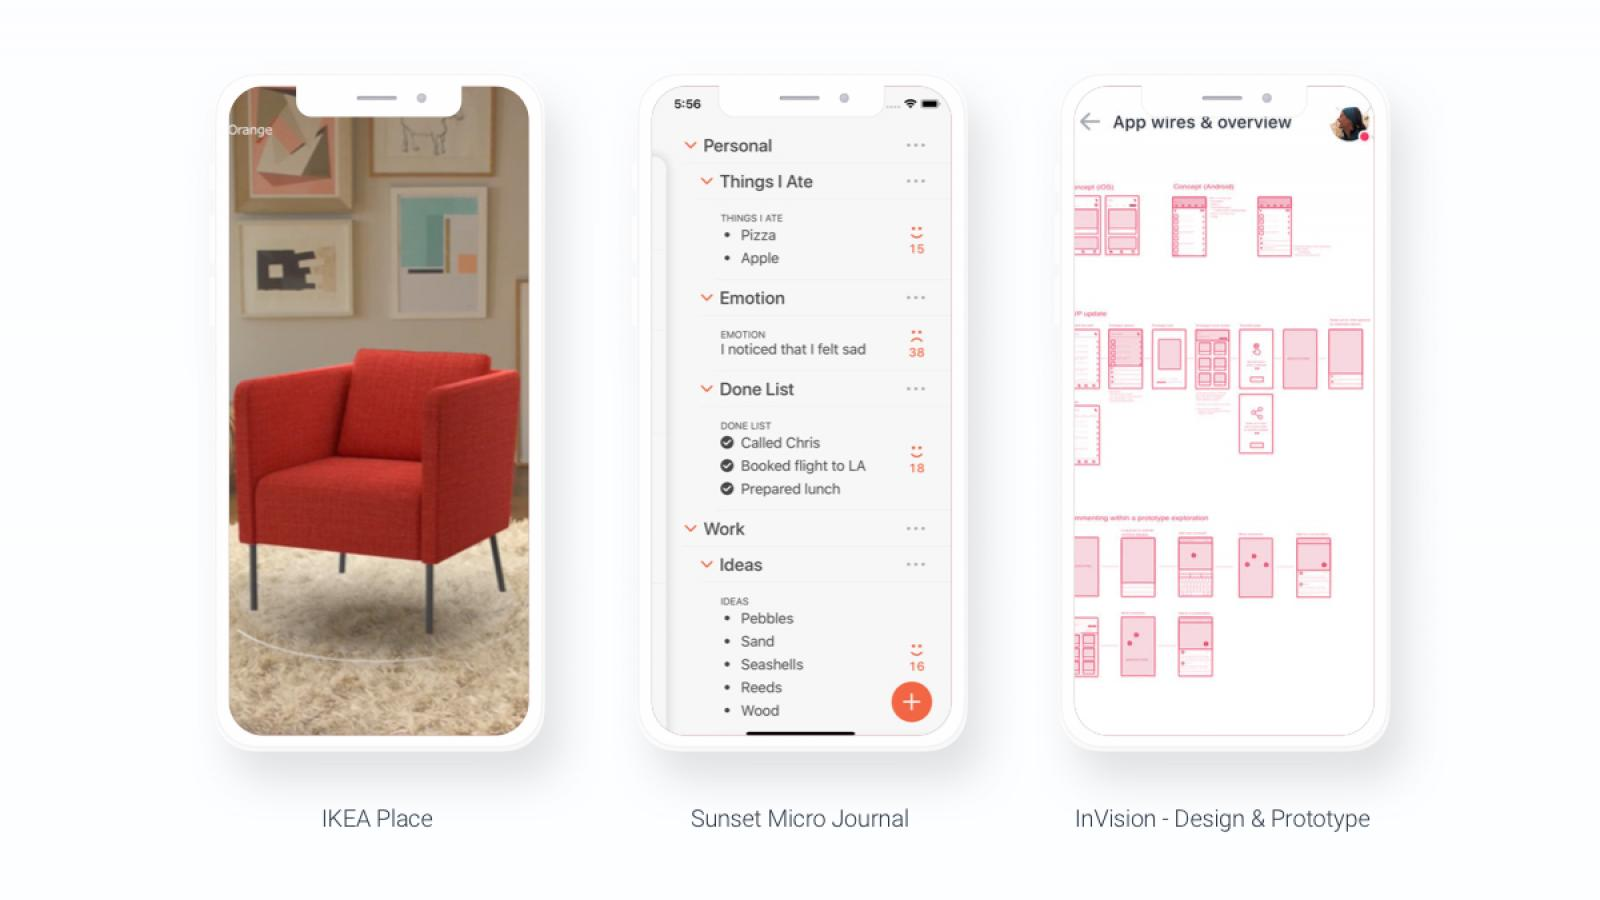 Discover iOS Apps: Dreams, Sunset Micro Journal and more